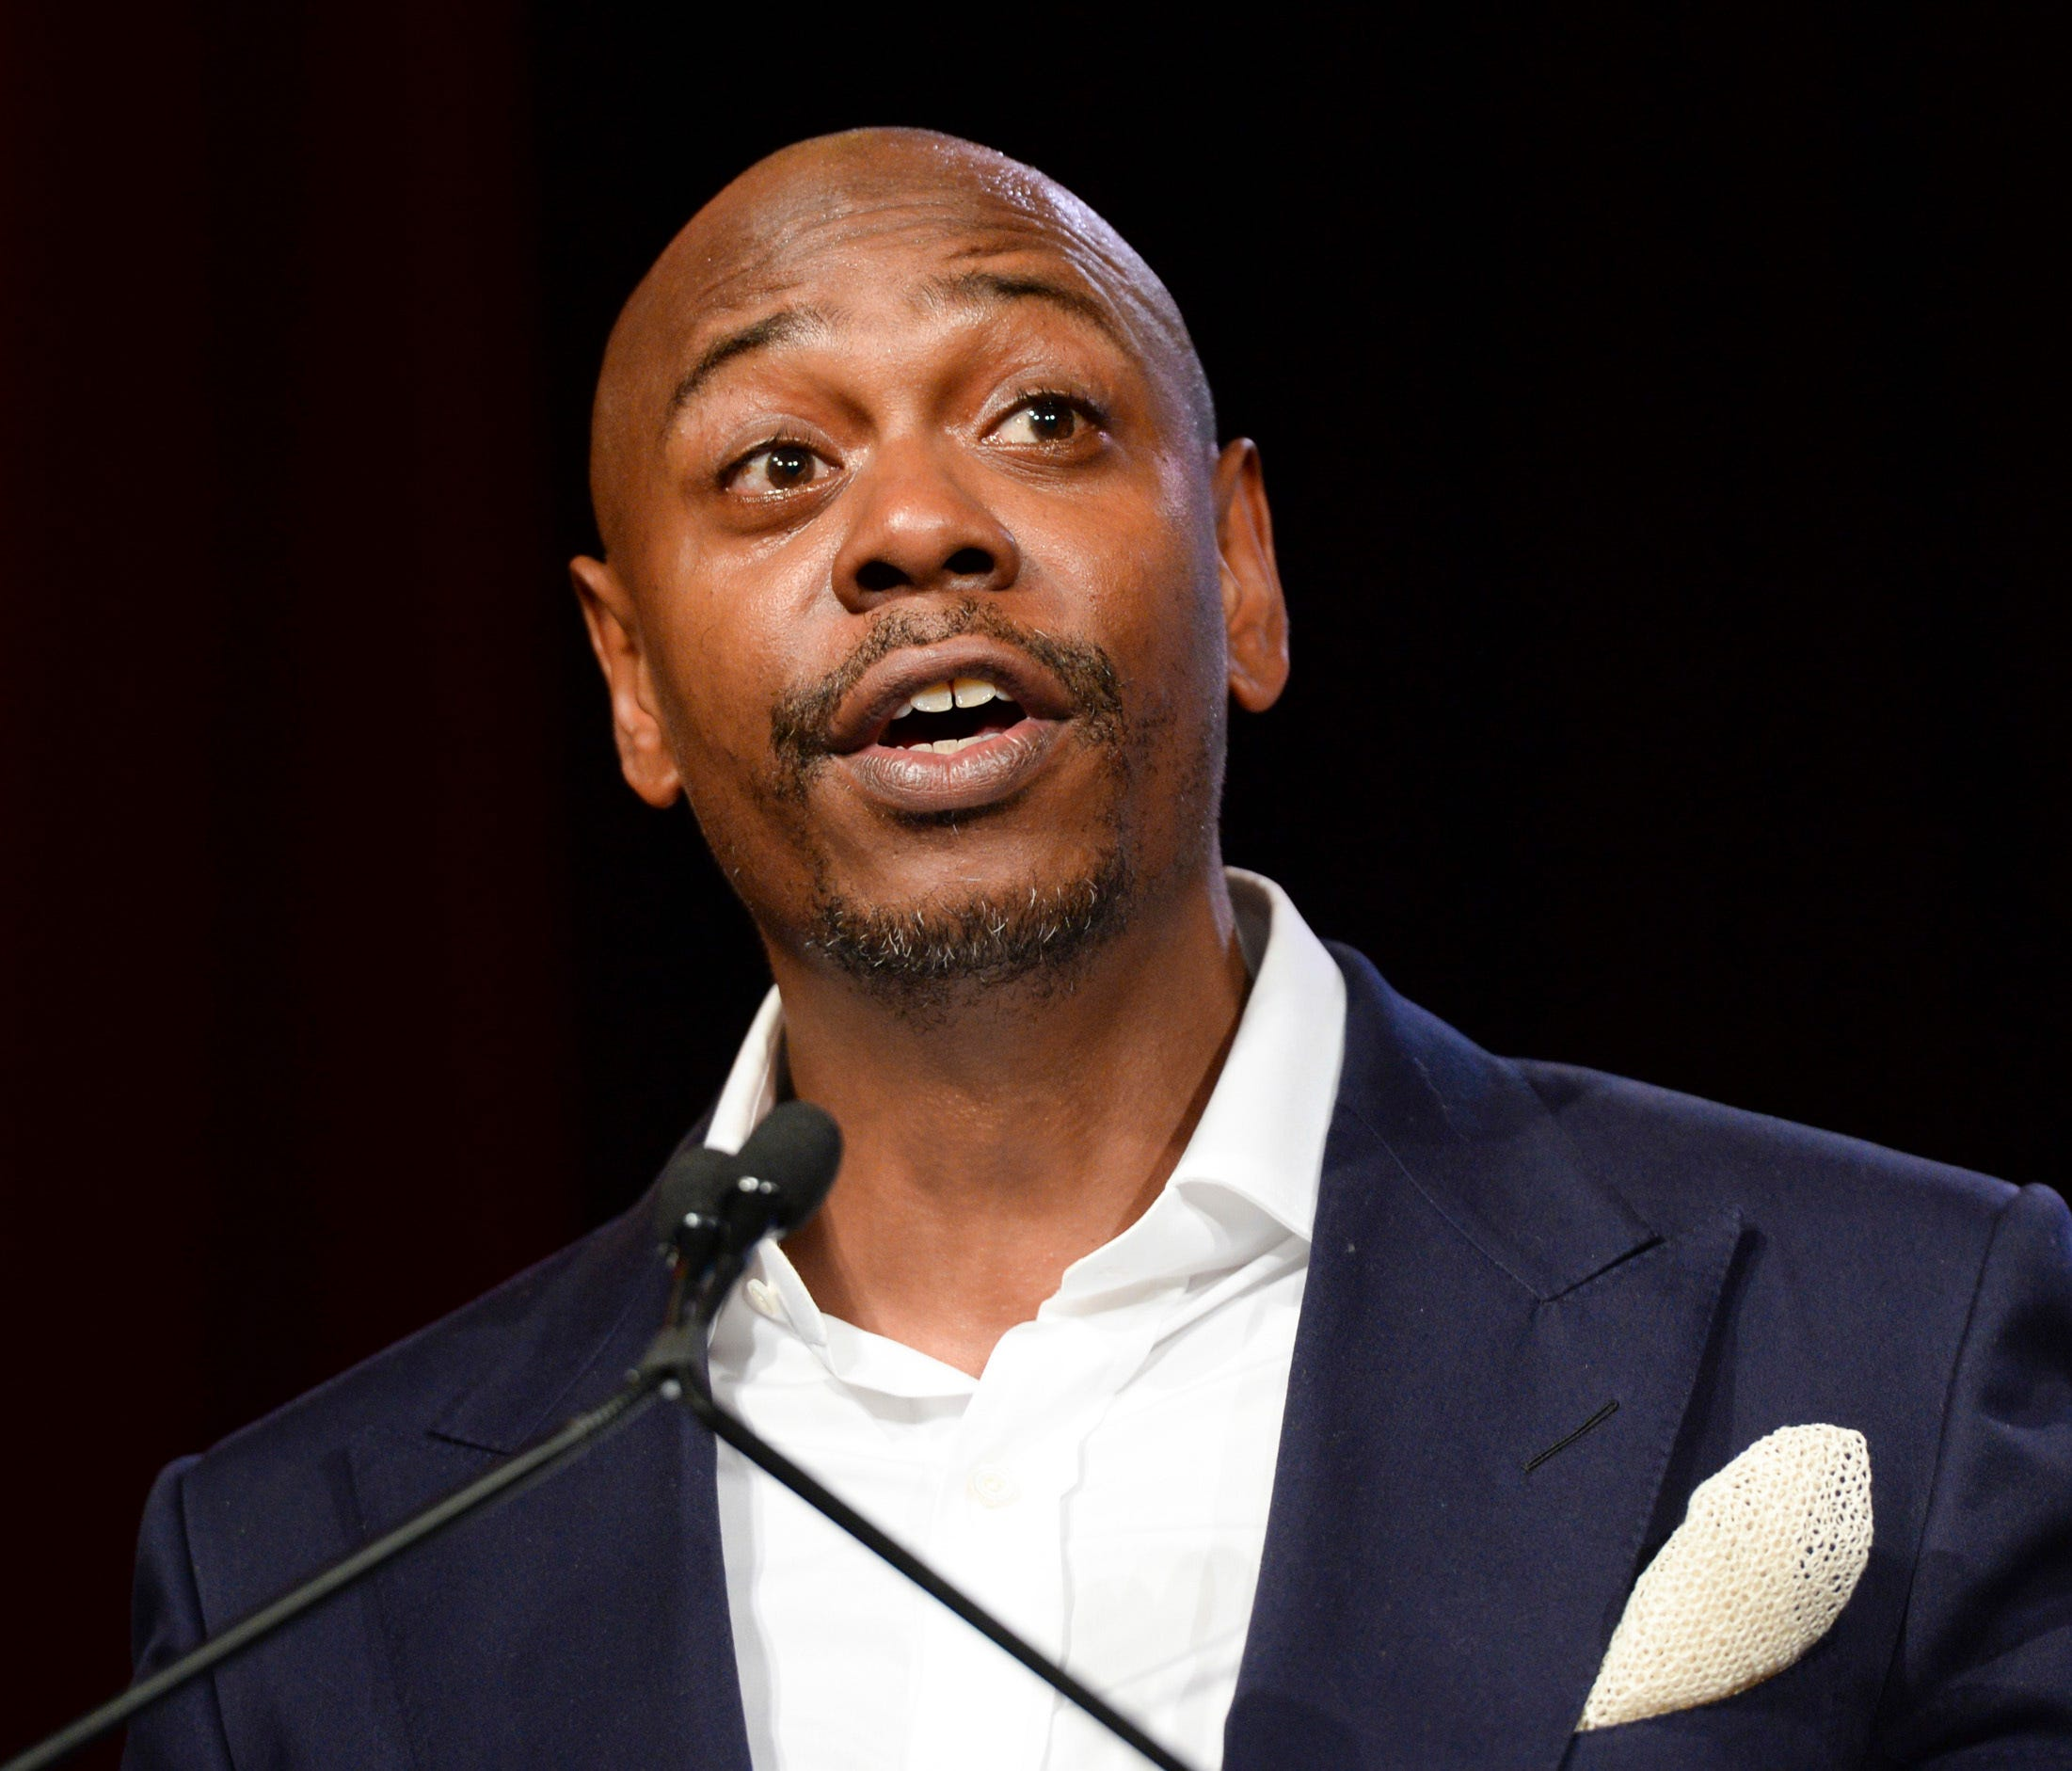 FILE - In this July 18, 2015 file photo, comedian Dave Chappelle speaks at the RUSH Philanthropic Arts Foundation's Art for Life Benefit in New York. Chappelle is urging progressive policing in his southwestern Ohio hometown, where questions have bee